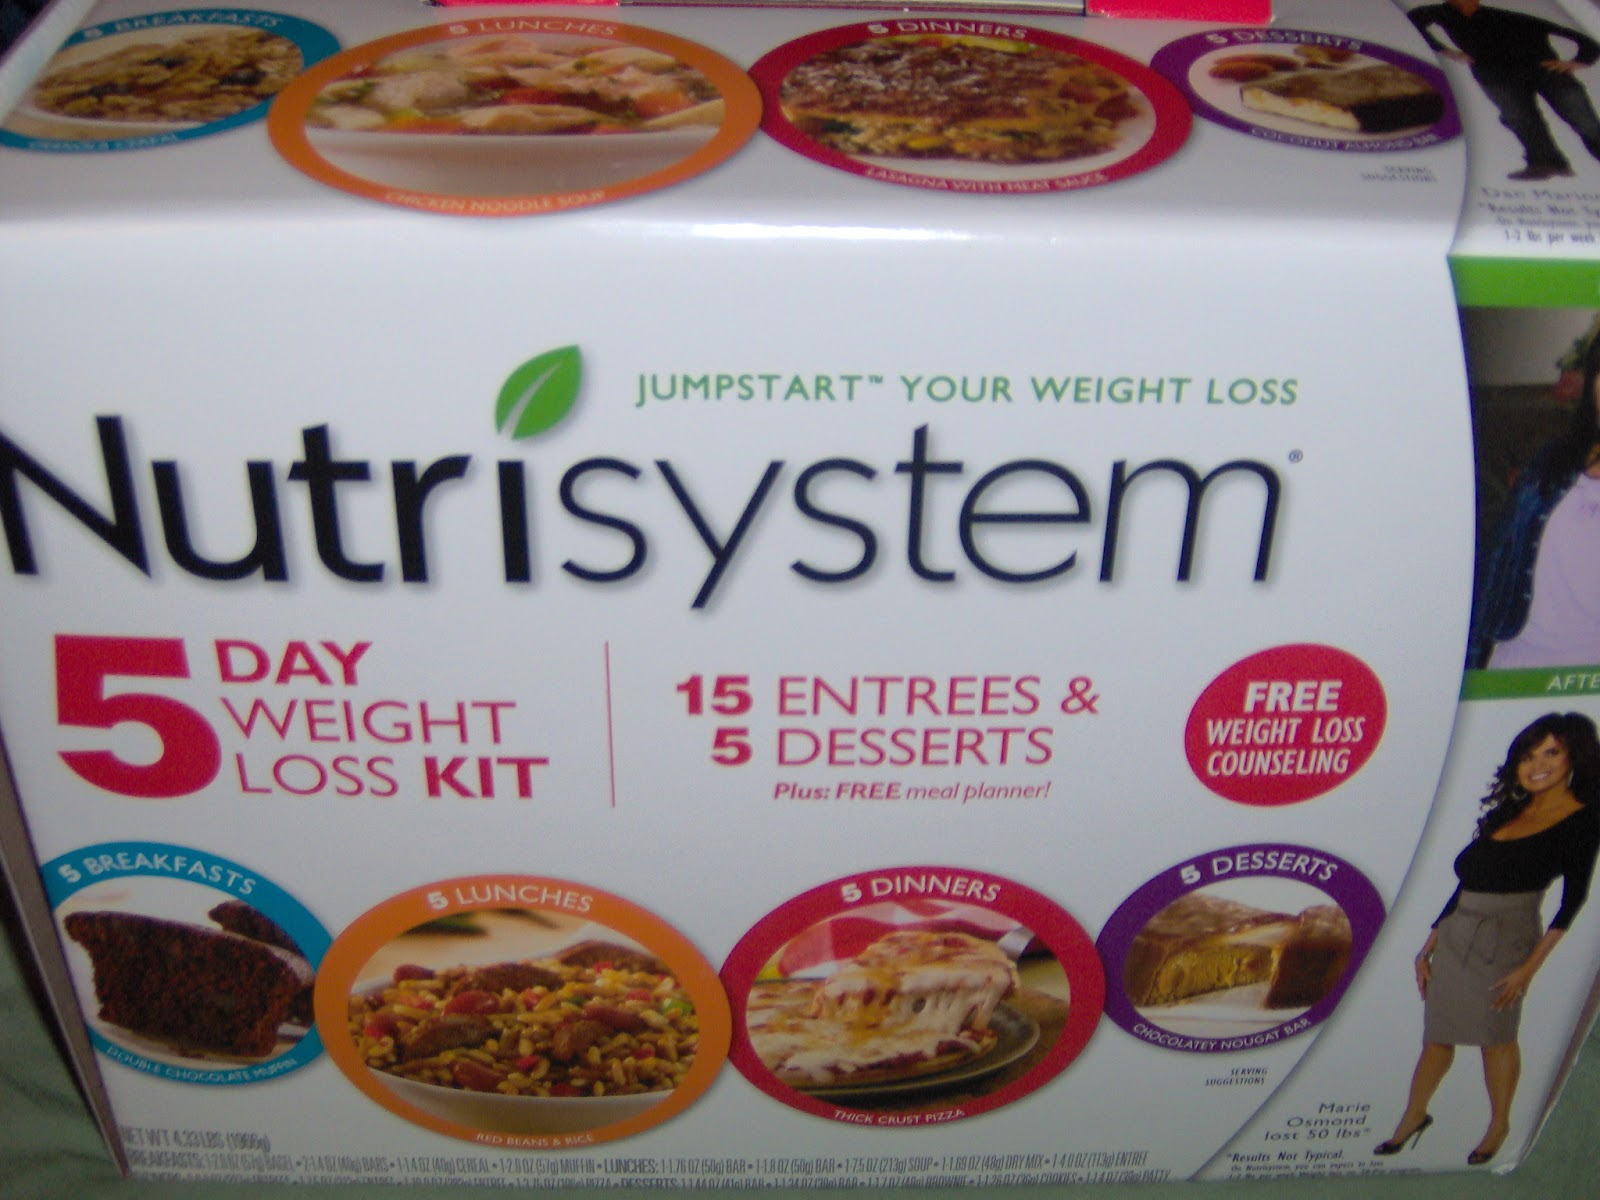 The ideal Nutrisystem for women plan to lose weight and have a break from the kitchen